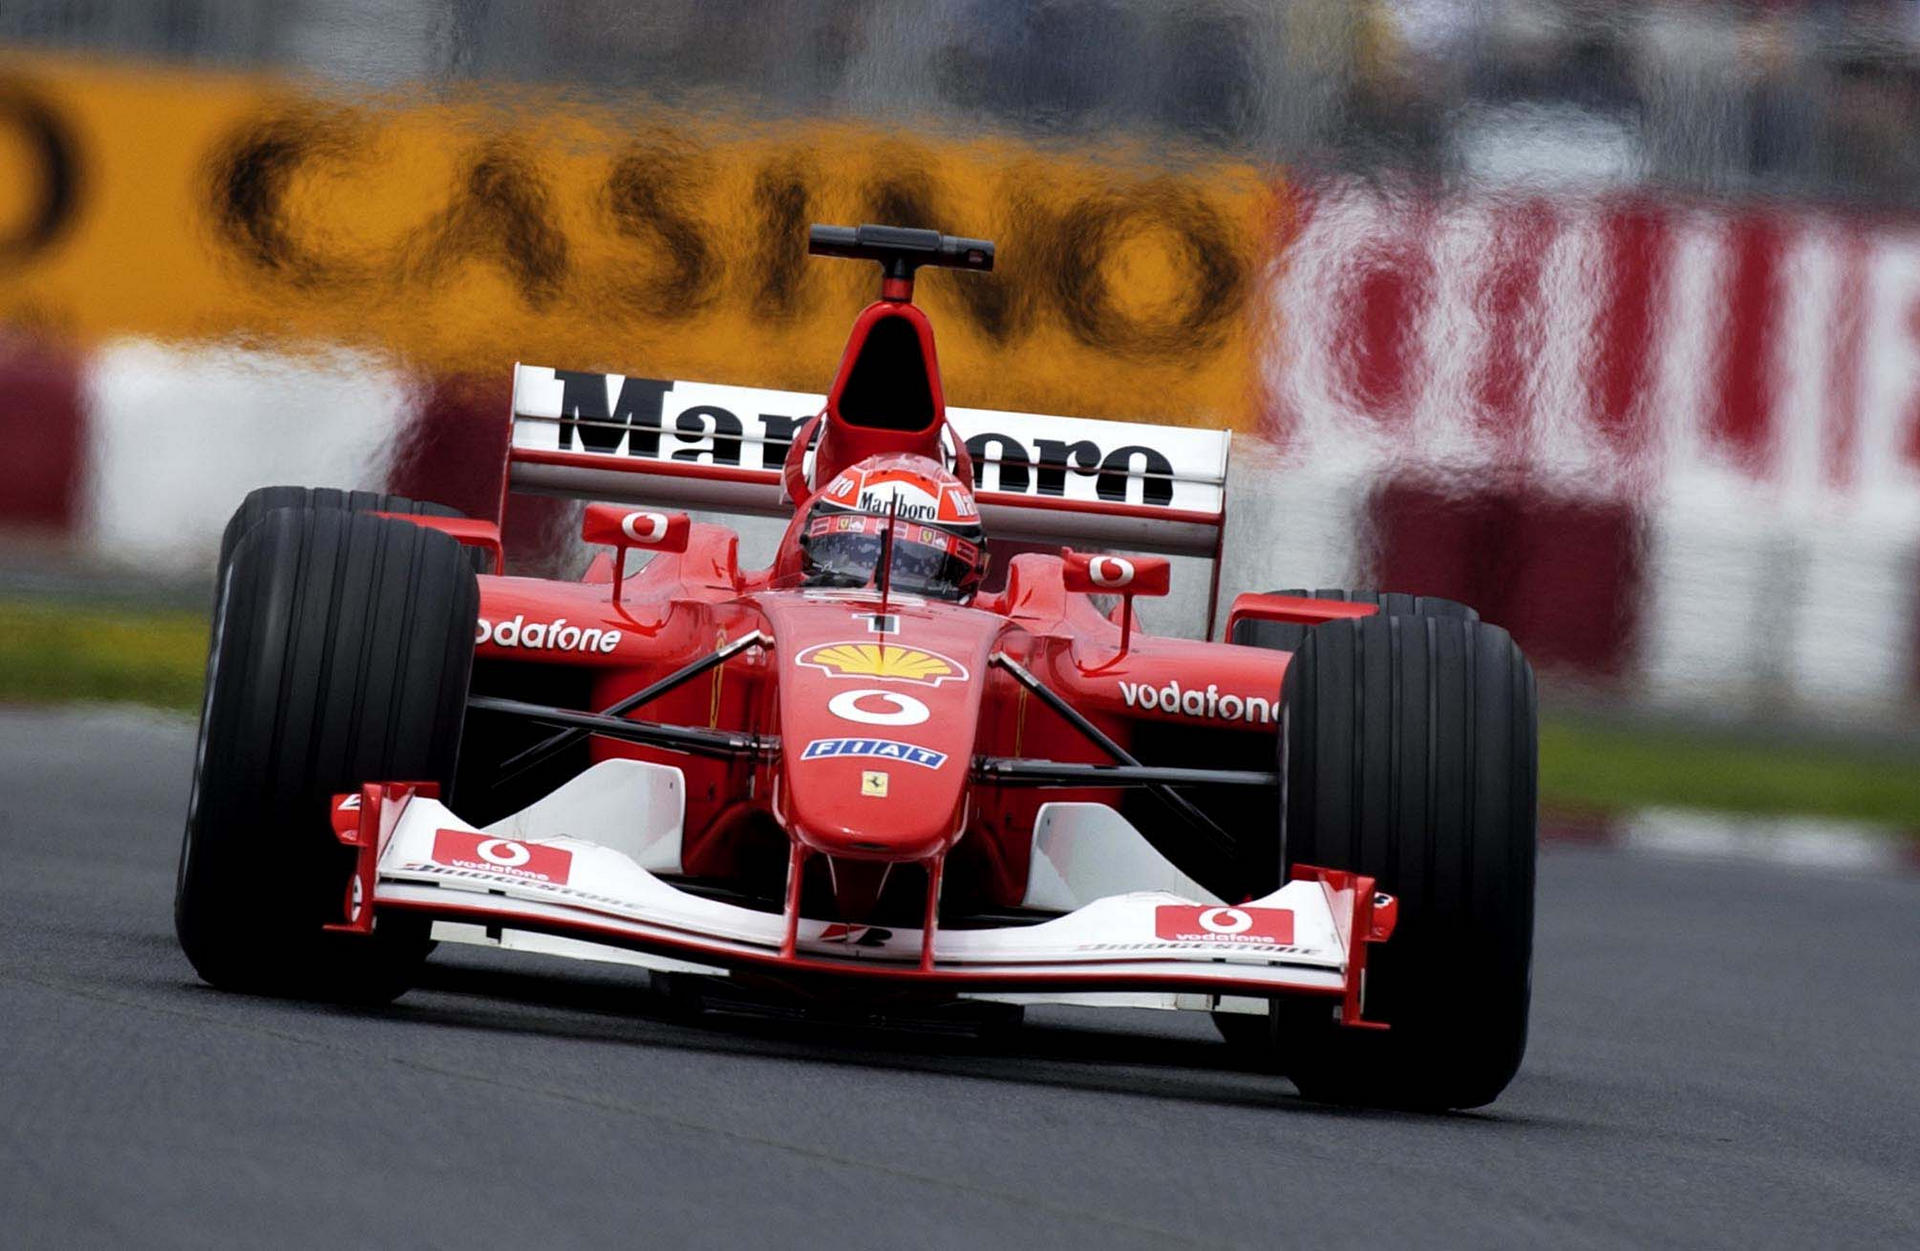 HD Wallpapers 2002 Formula 1 Grand Prix of Canada | F1 ...